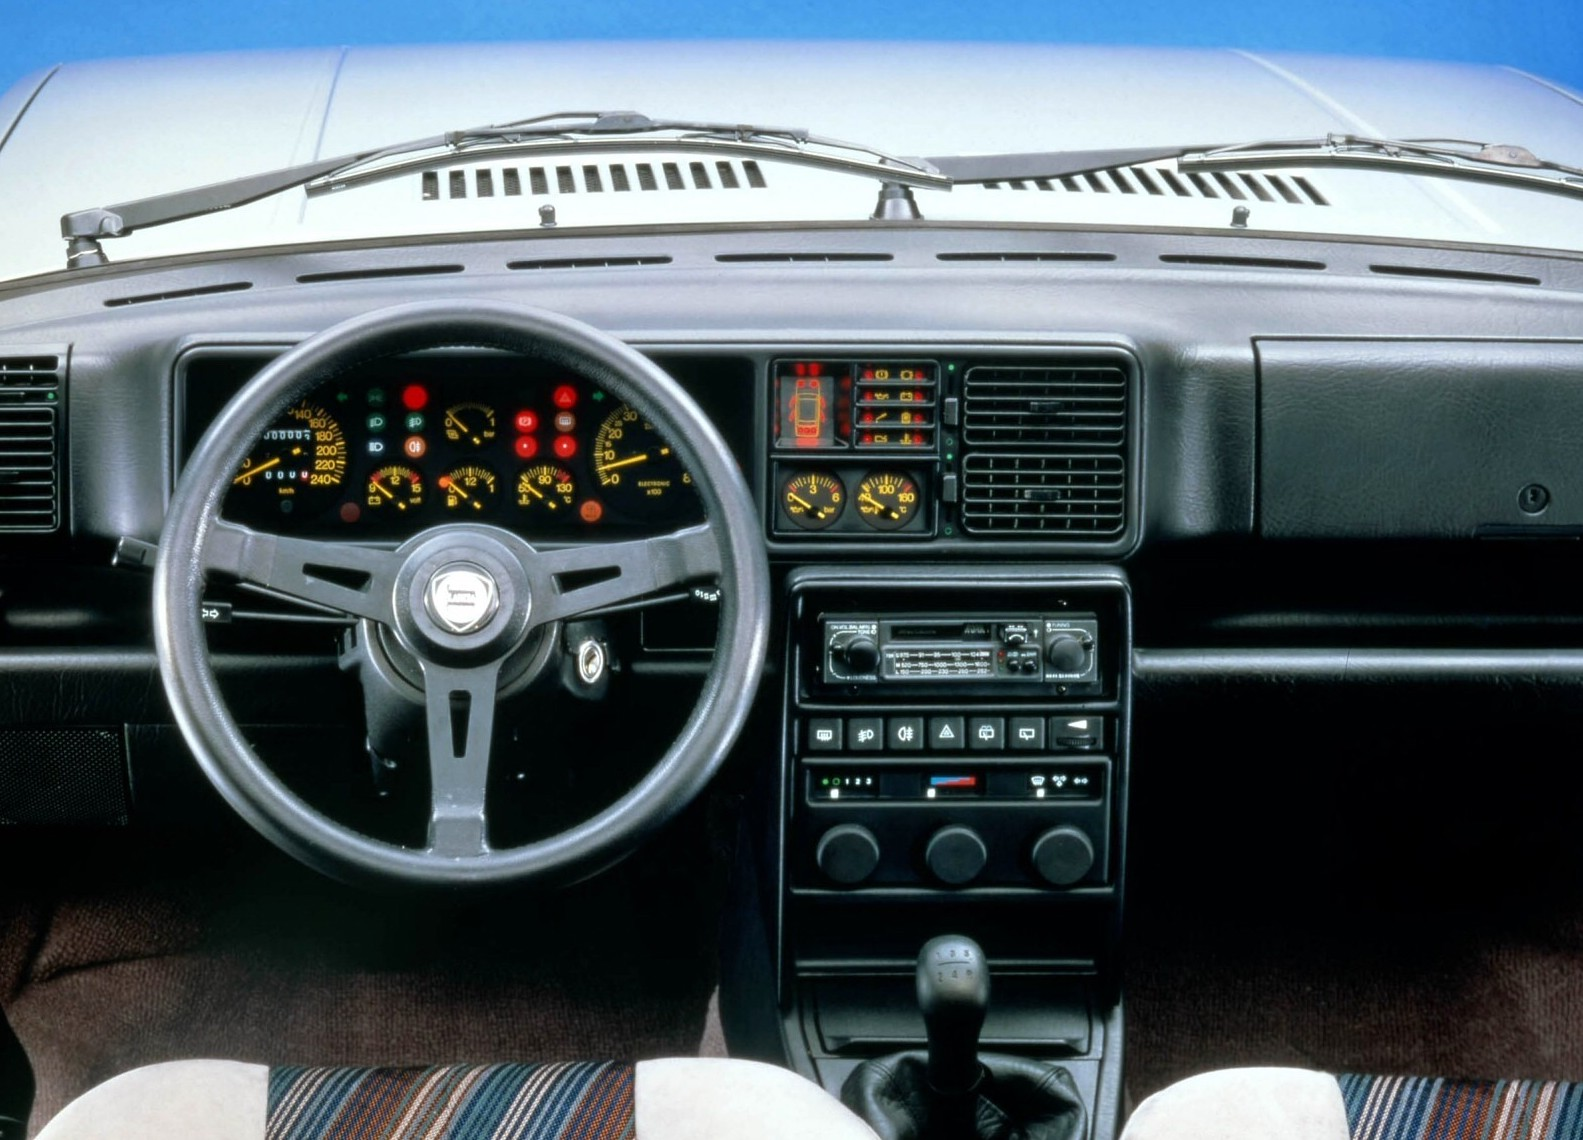 Lancia Delta HF Turbo 4WD interior